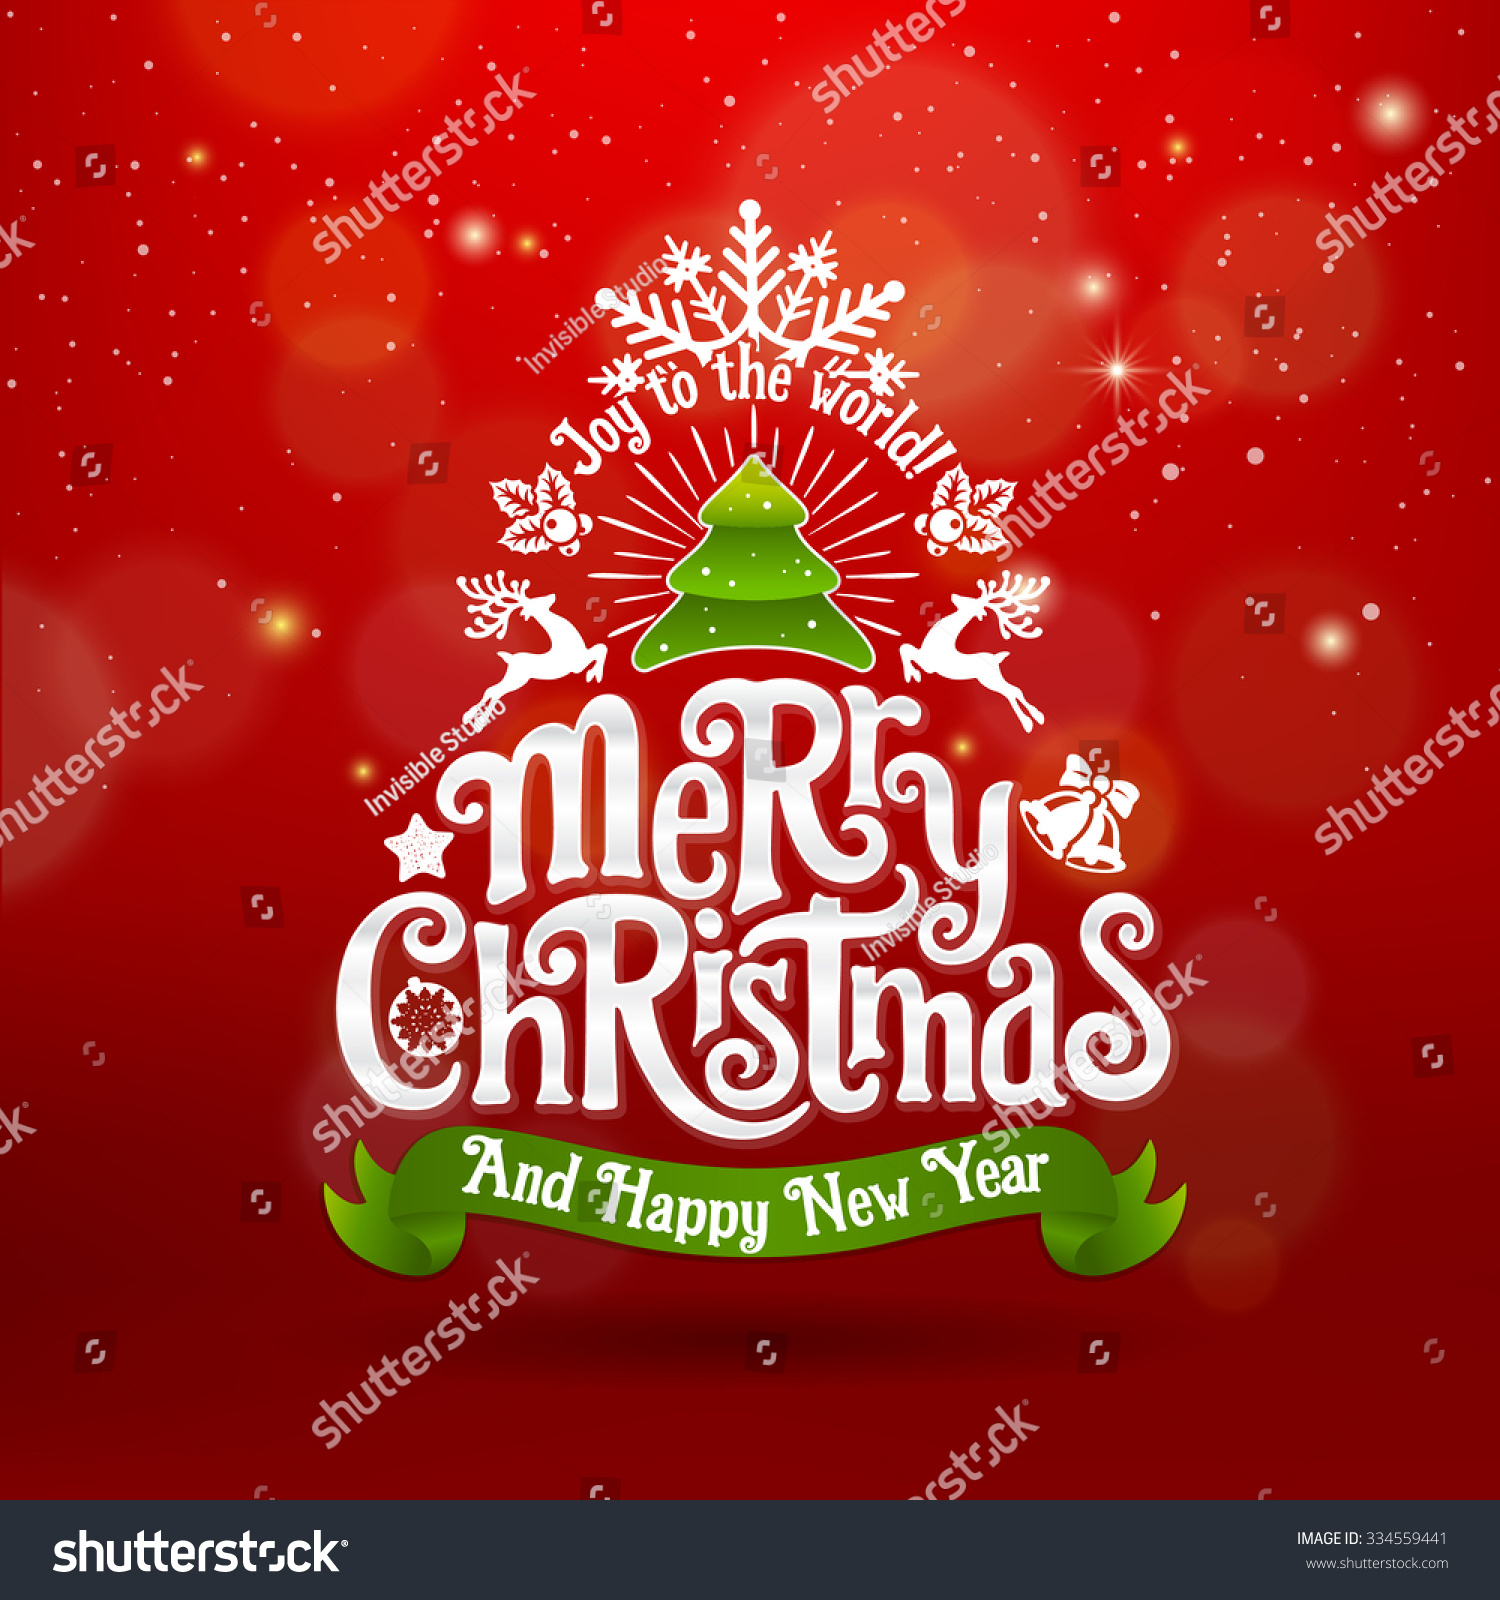 Christmas new year greeting card tree stock vector 334559441 christmas and new year greeting card with tree kristyandbryce Images